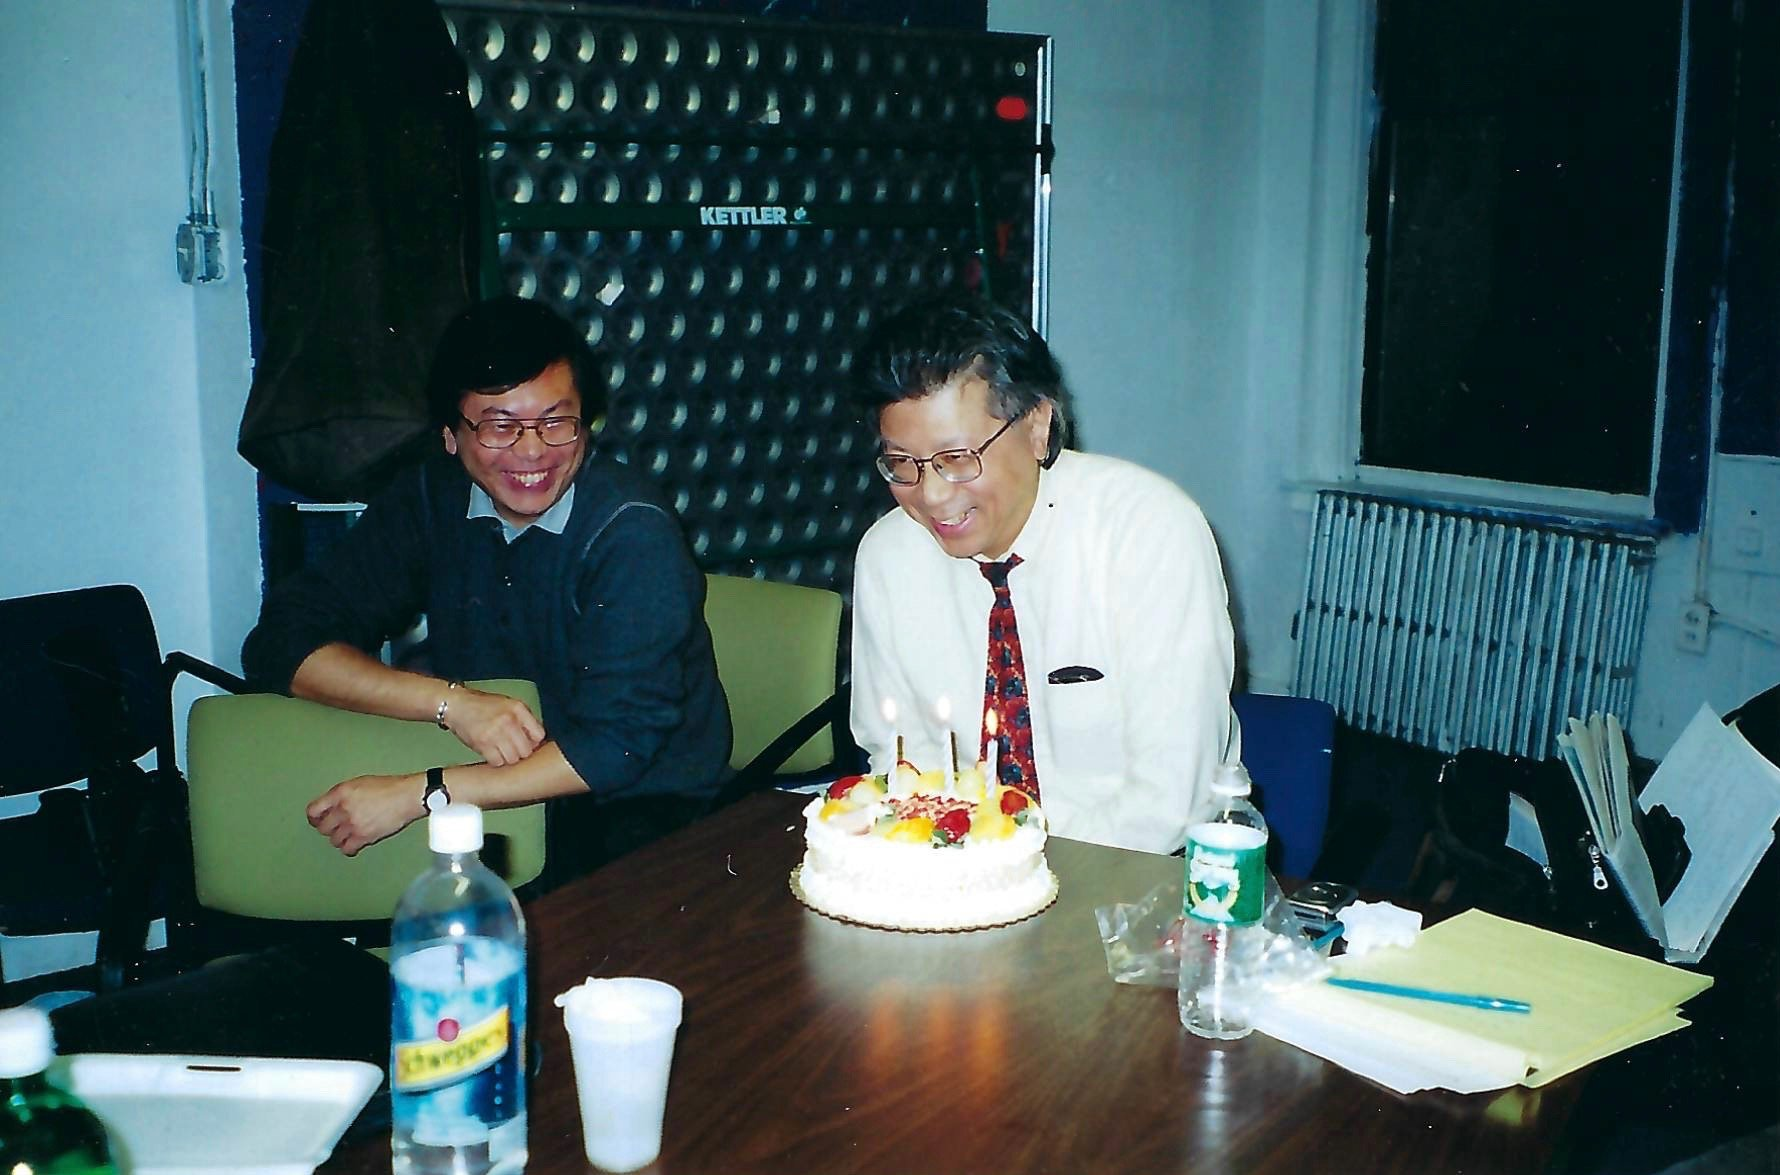 Corky Lee blowing out candles at his birthday party